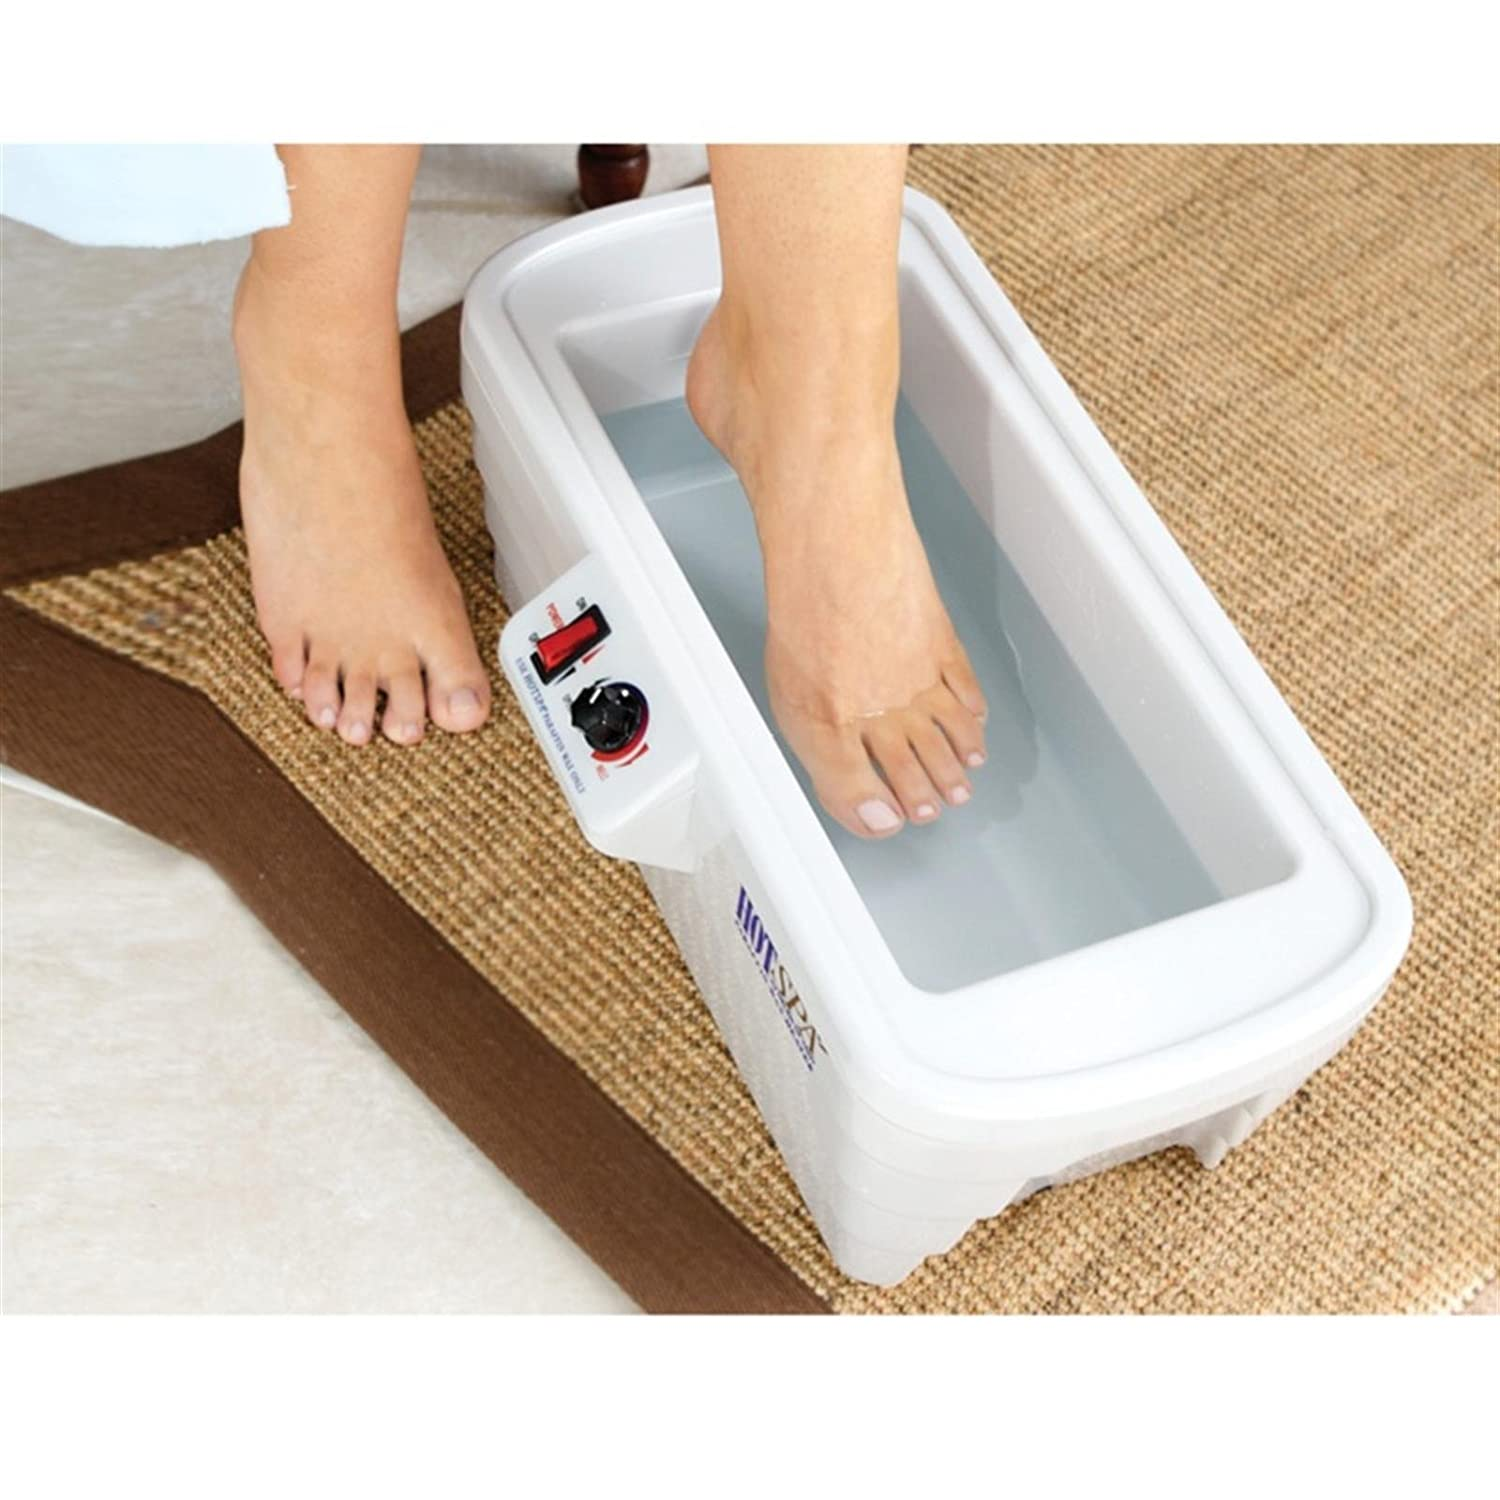 Amazon.com: Helen of Troy HotSpa Professional Paraffin Bath ... for Paraffin Wax Foot Bath  289ifm